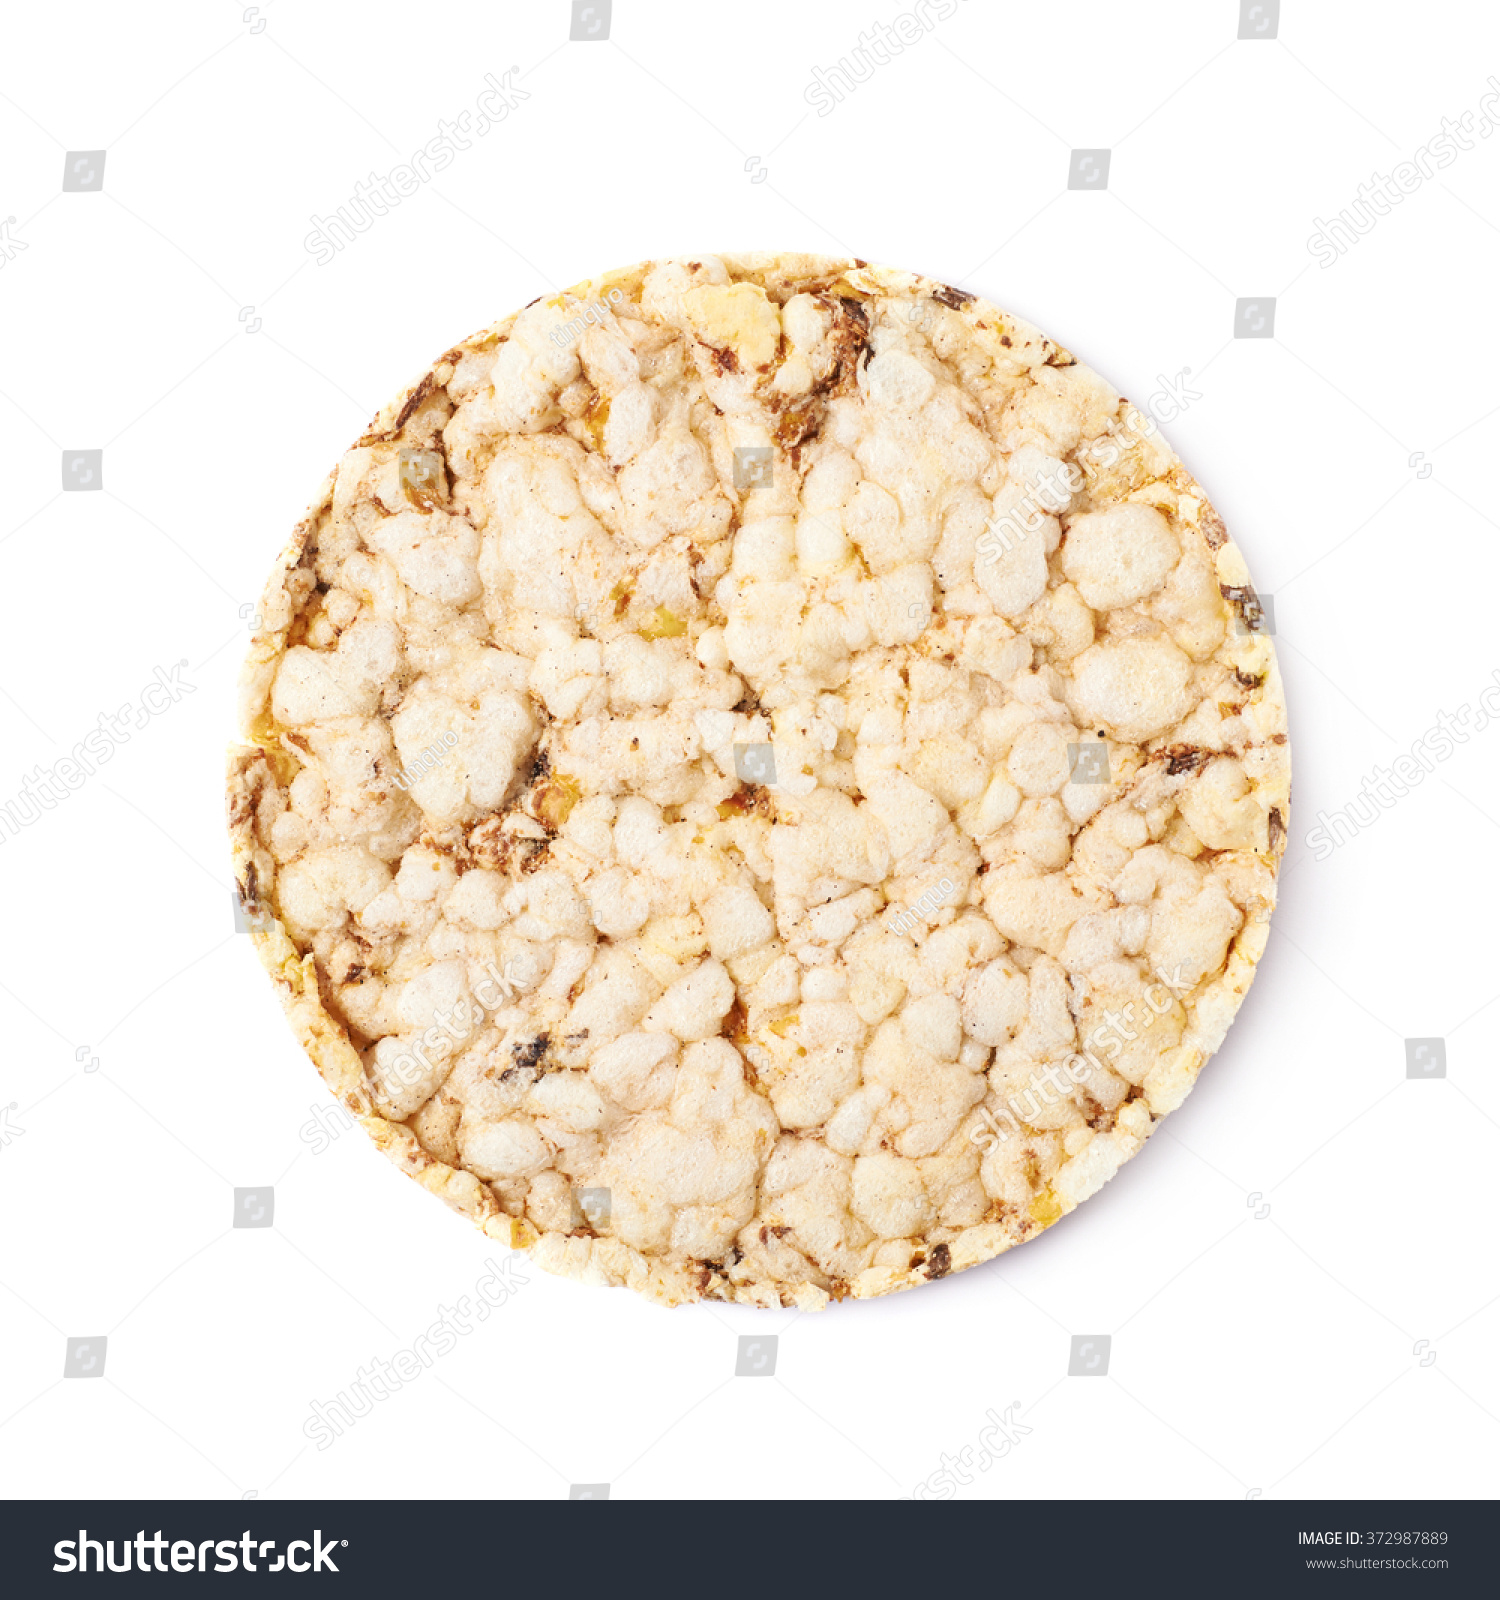 Round Diet Rice Cracker Isolated Stock Photo 372987889